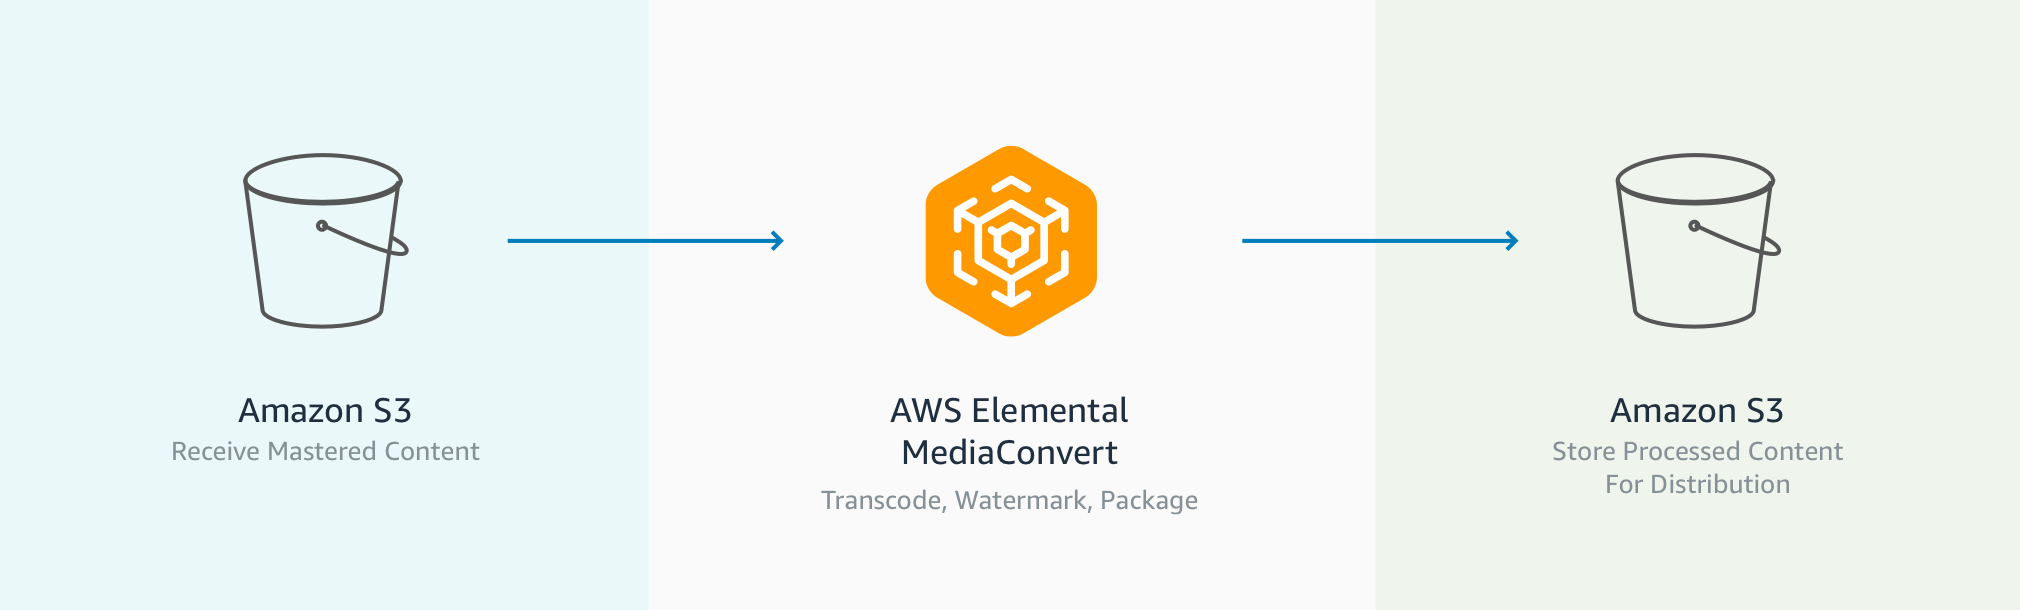 AWS Elemental Workflow 3 copy